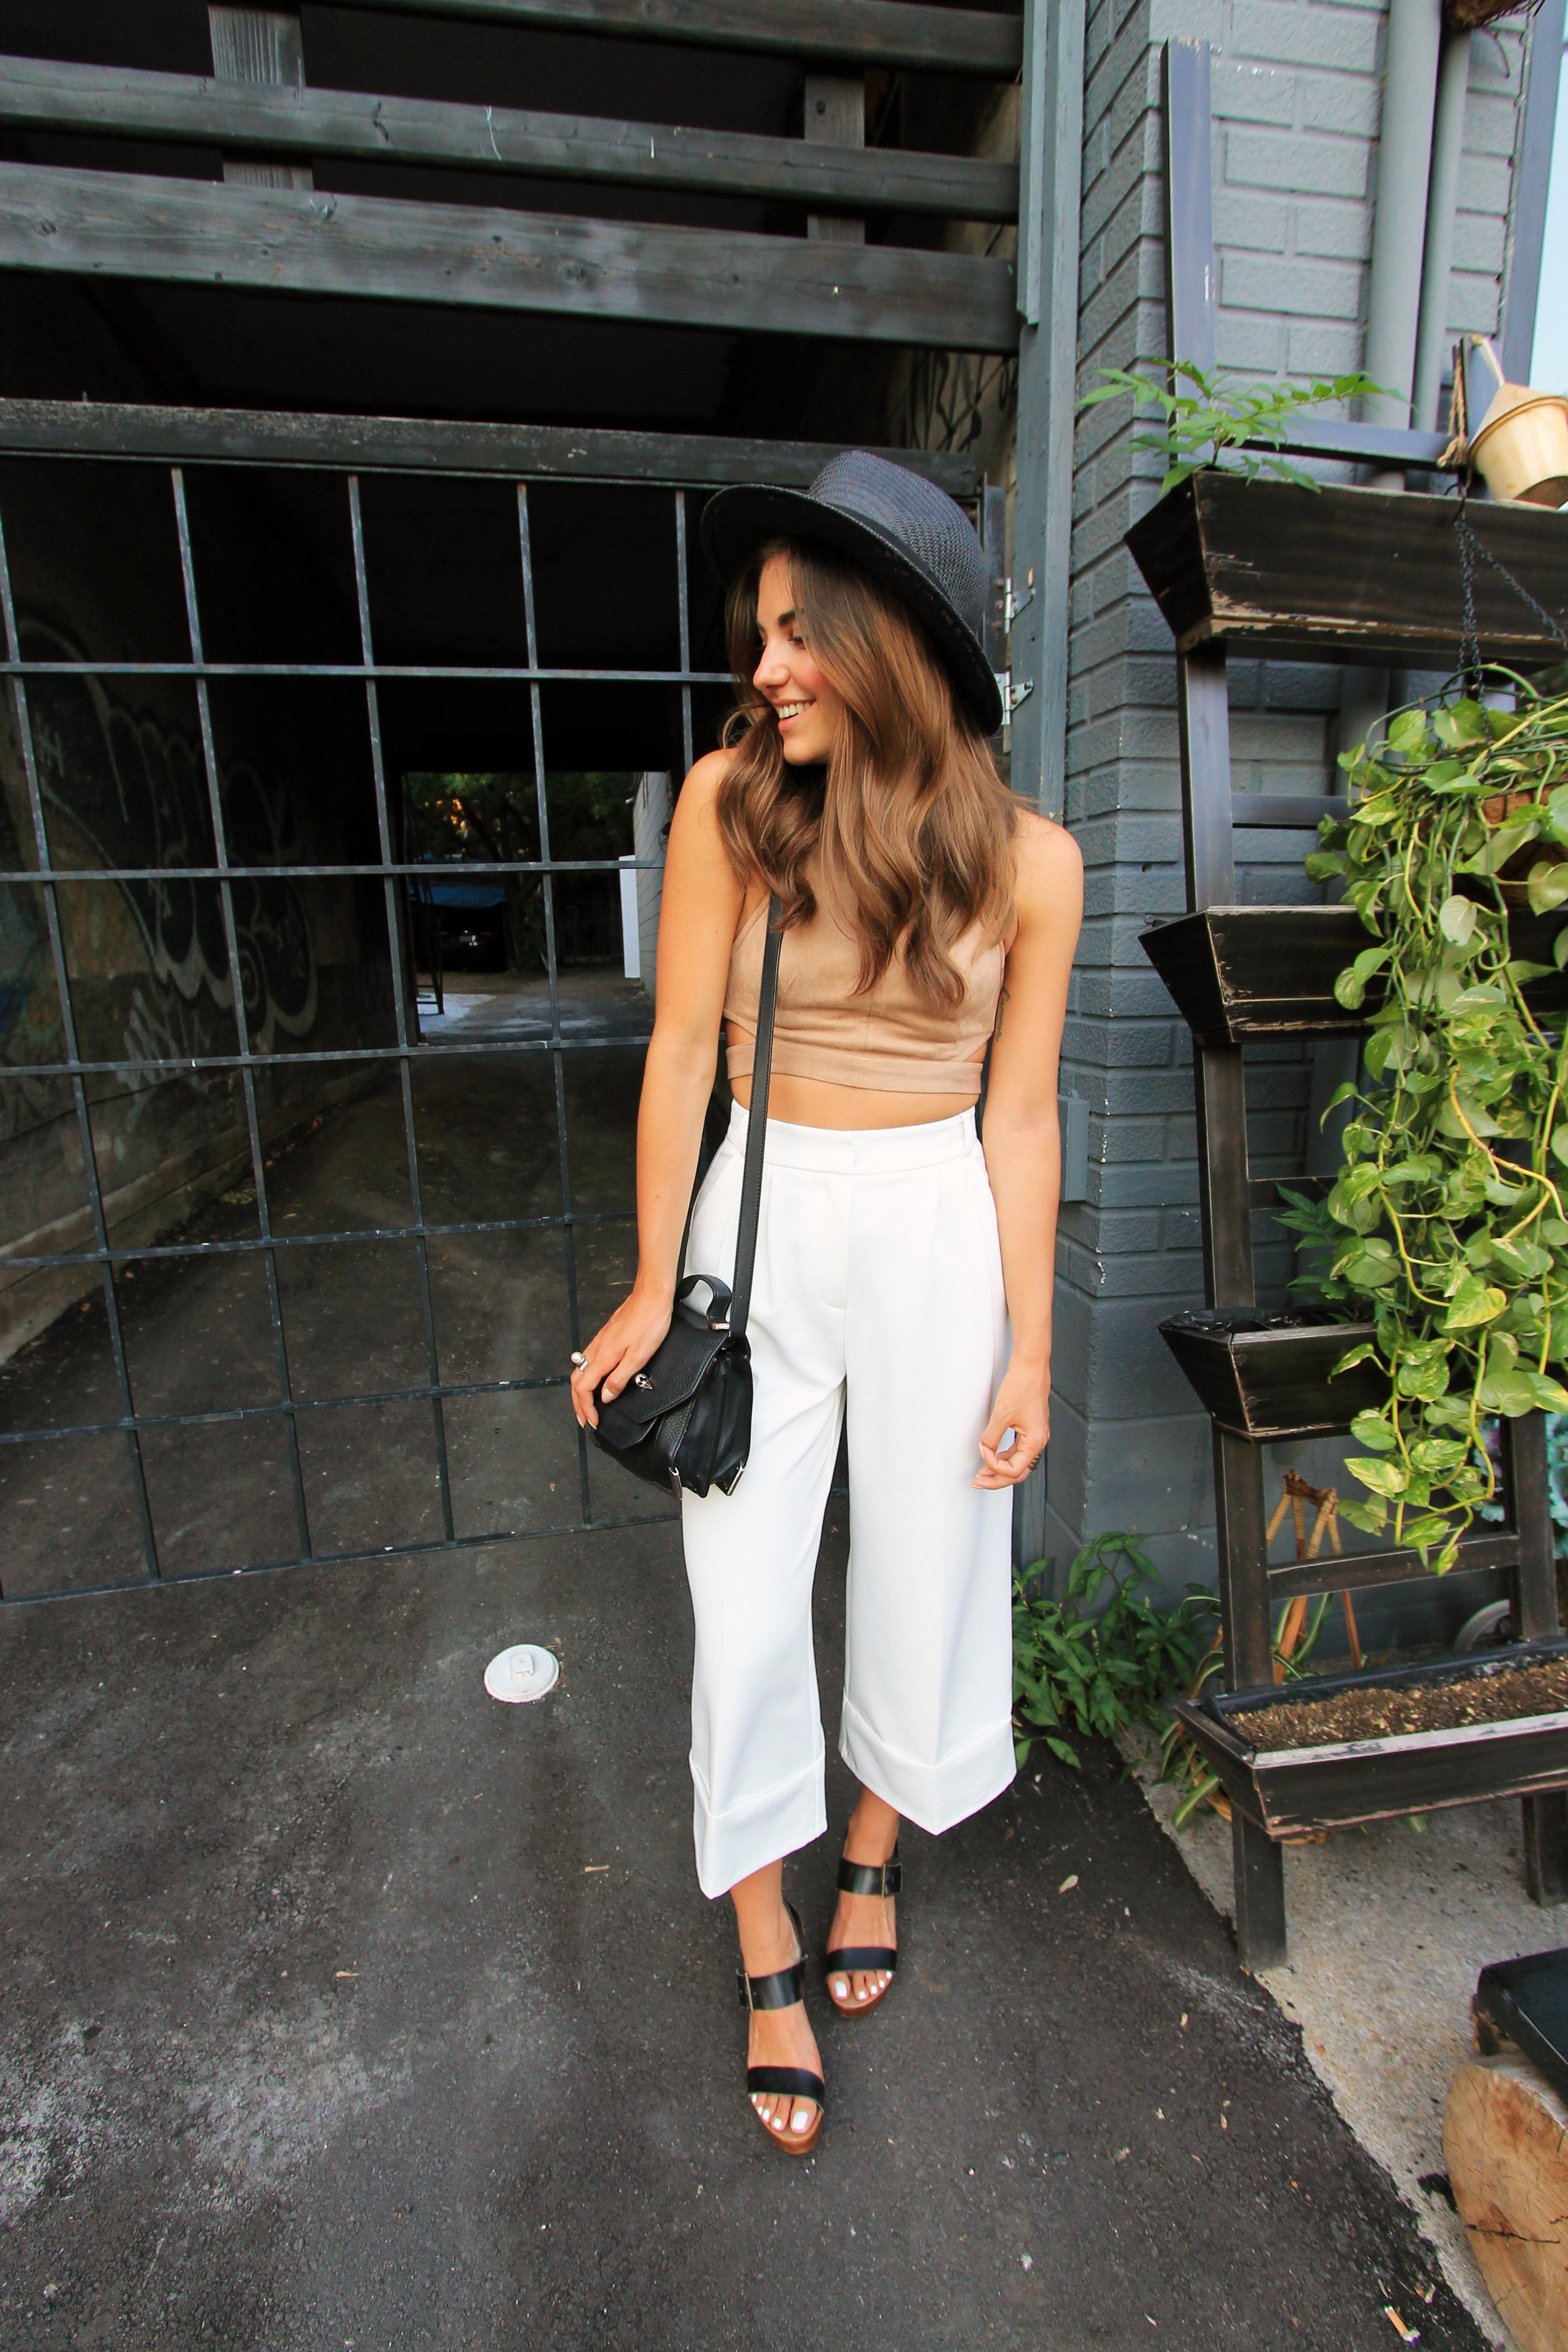 asos white high waisted culottes outfit style.jpg